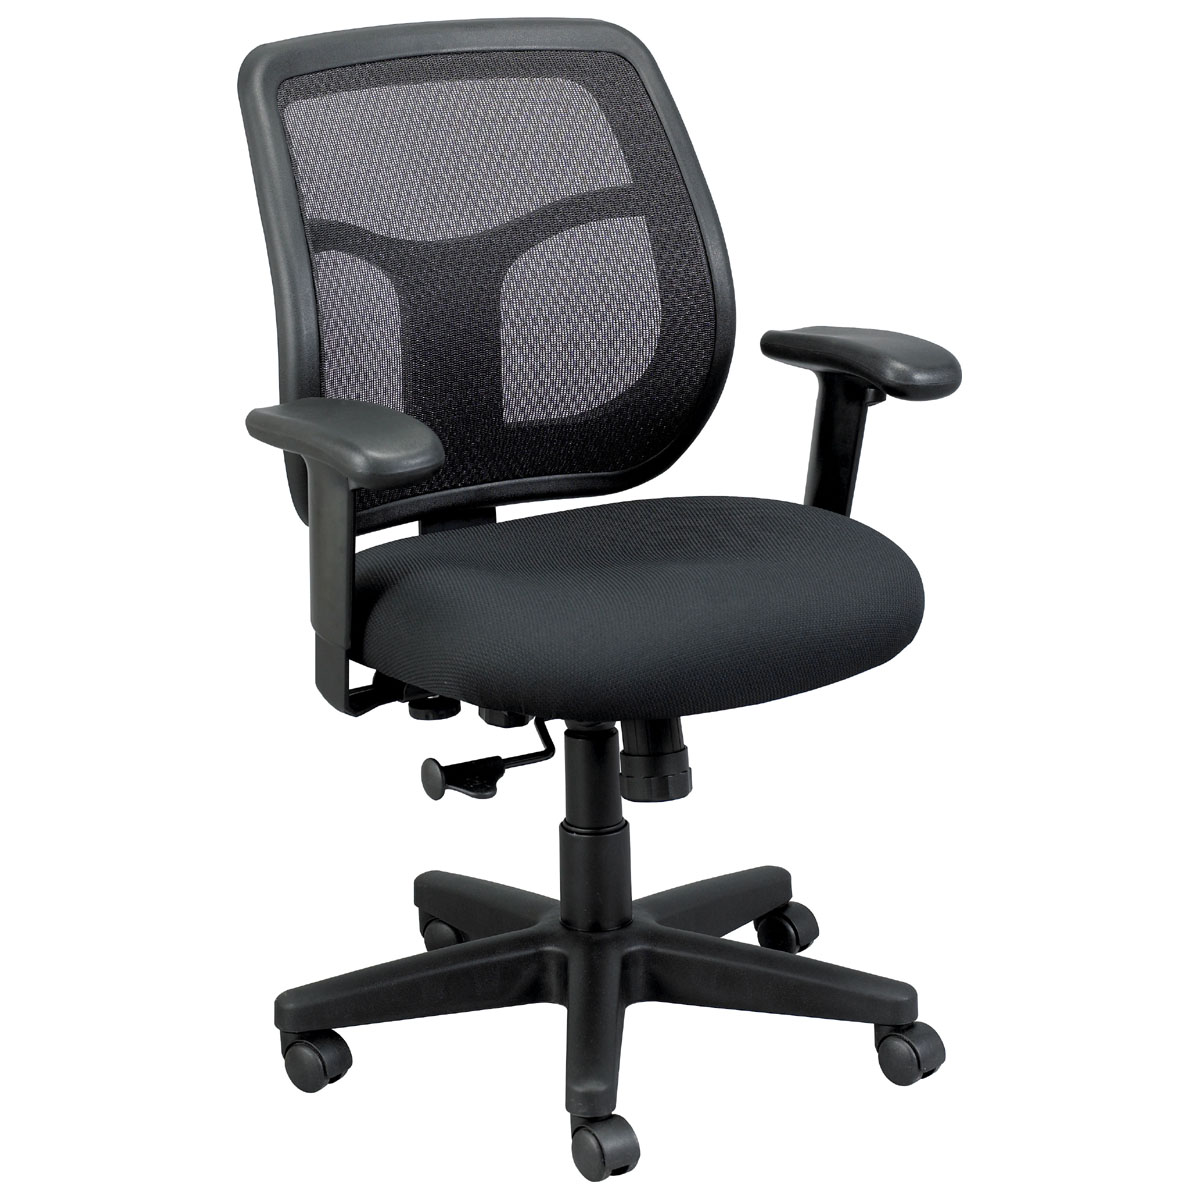 Eurotech Apollo MT9400 Chair  Shop Mesh Chairs at The